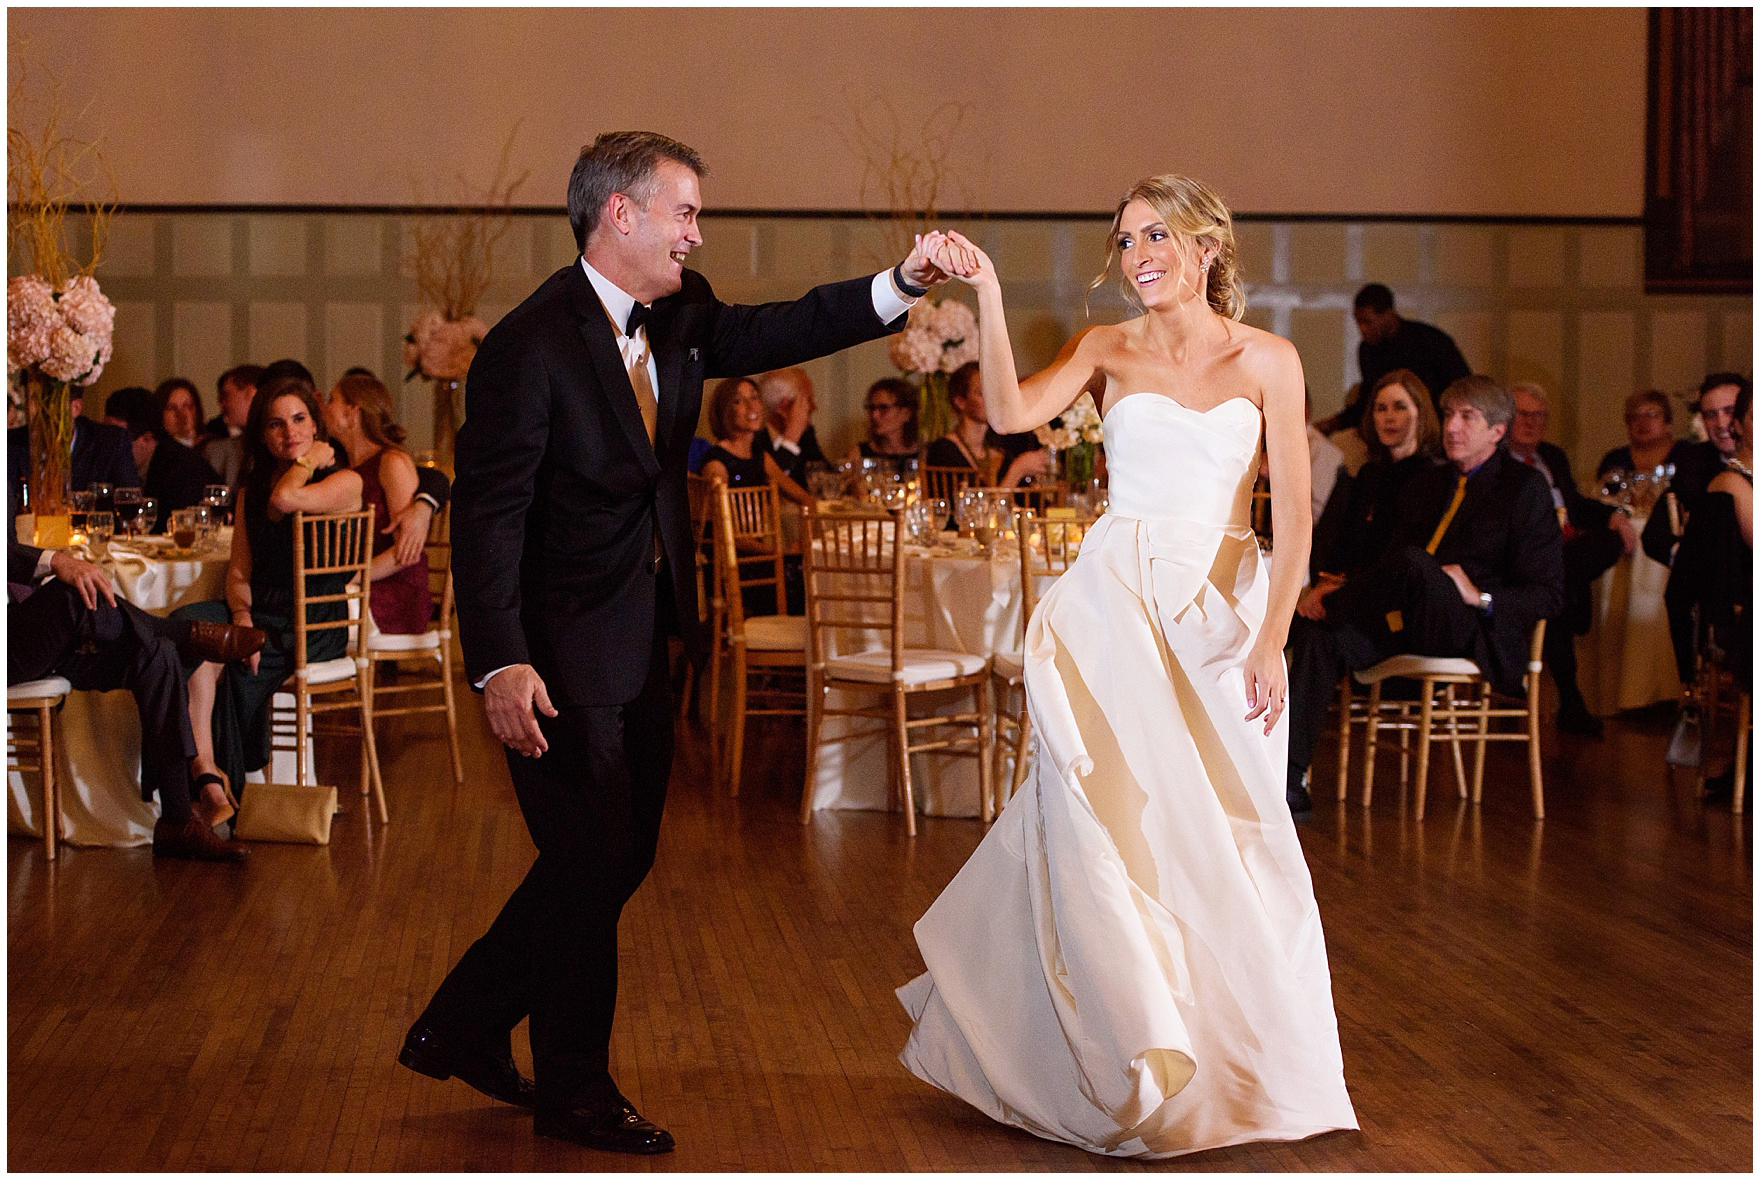 The bride and her dad dance during a St. Clement Germania Place Chicago wedding.